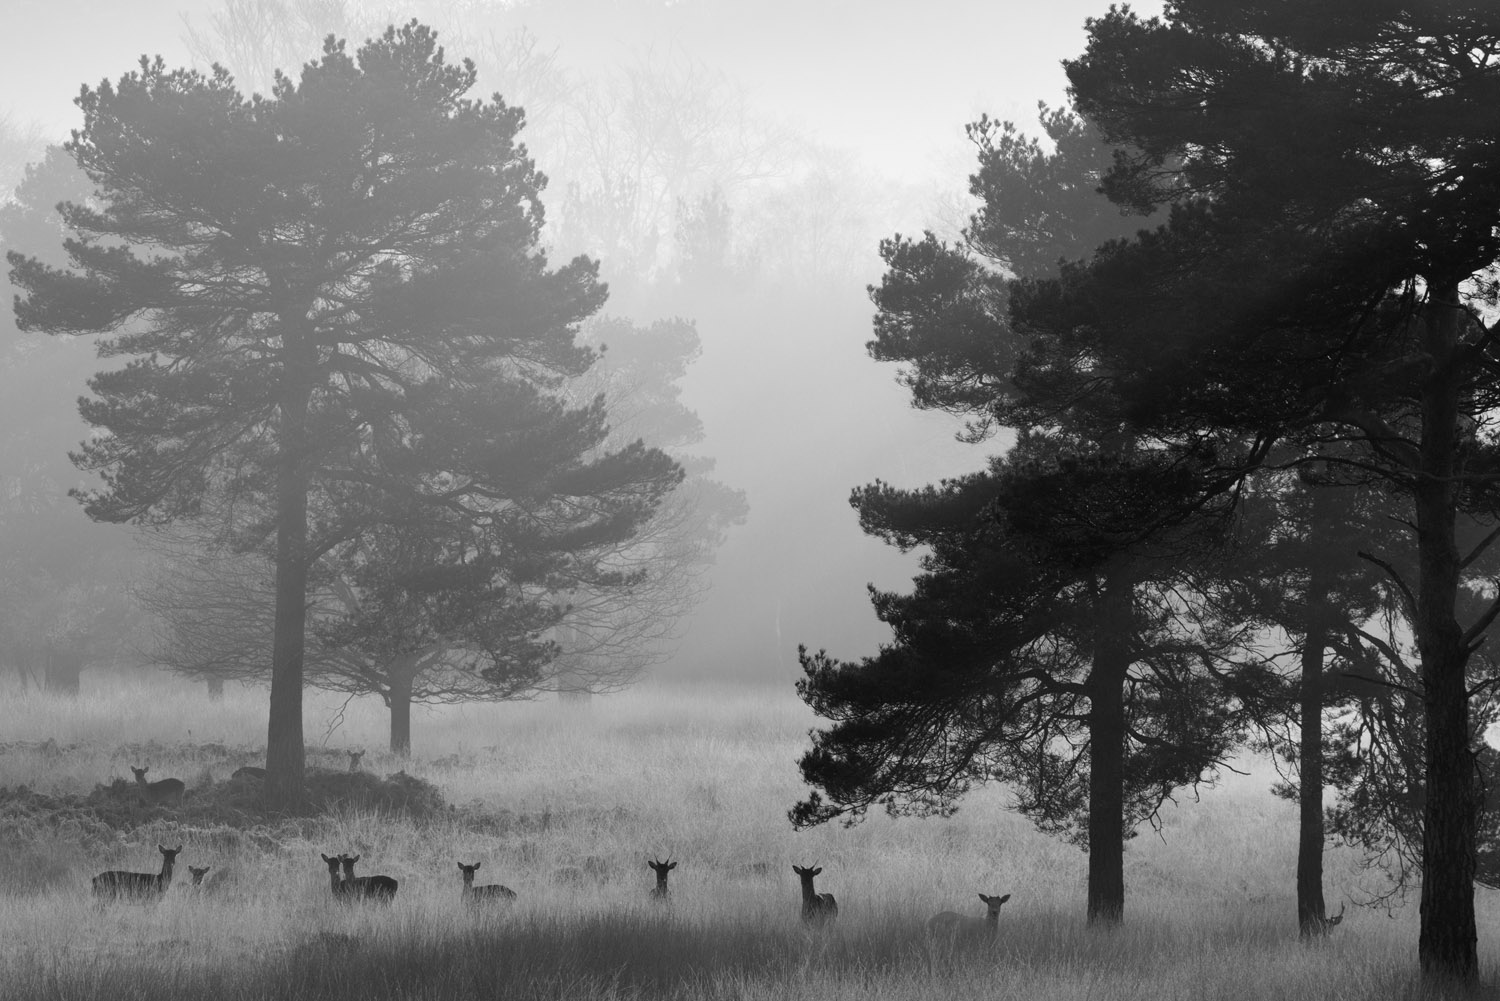 Fallow deer and Scots pines at dawn, Ashdown Forest, Sussex Weald, England